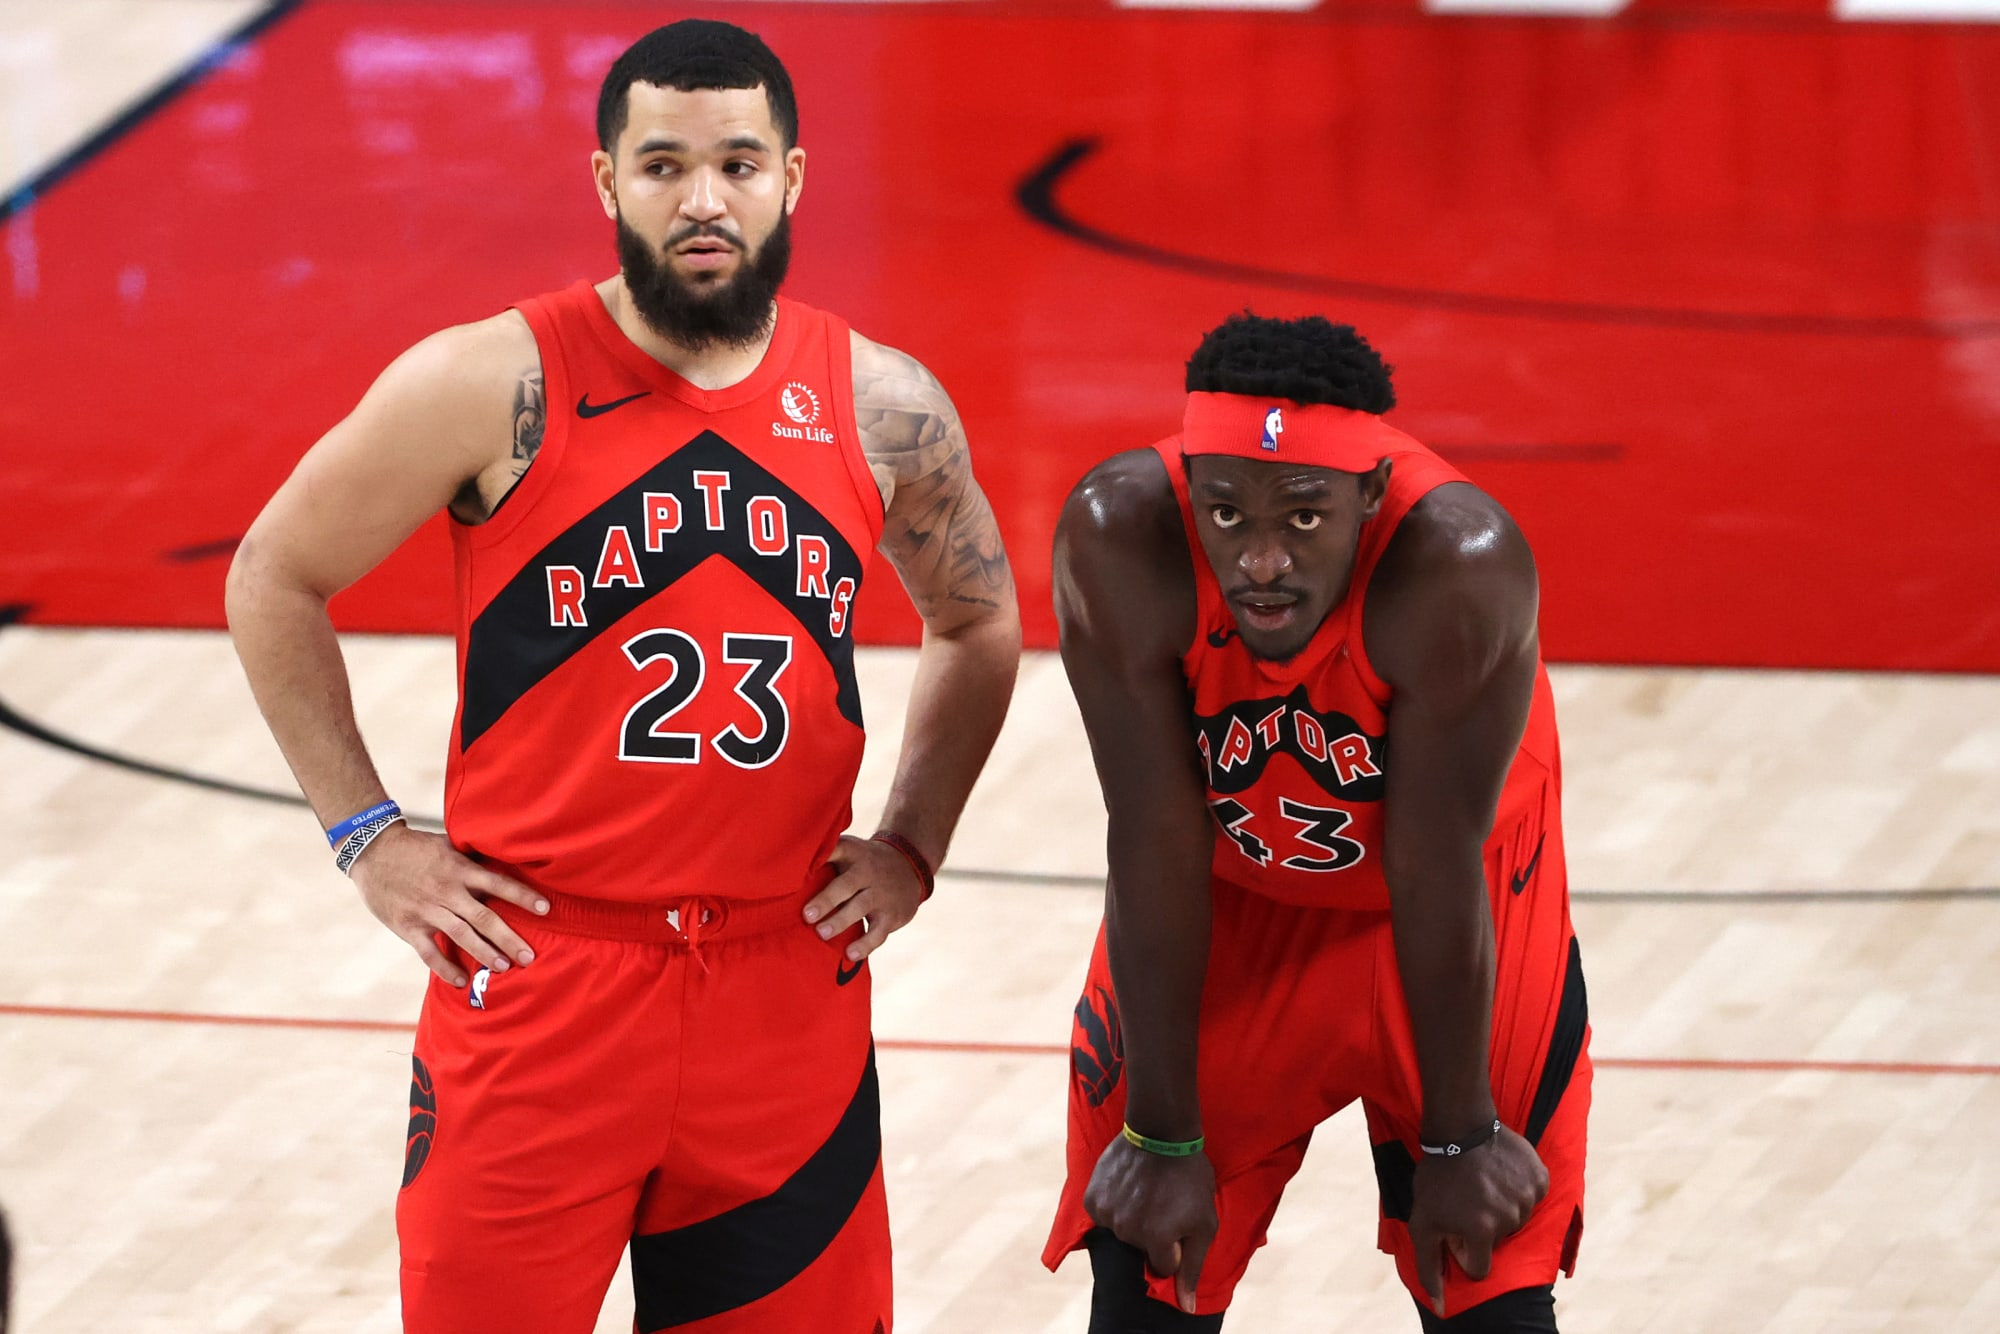 Raptors: Handing out player awards after up-and-down first half